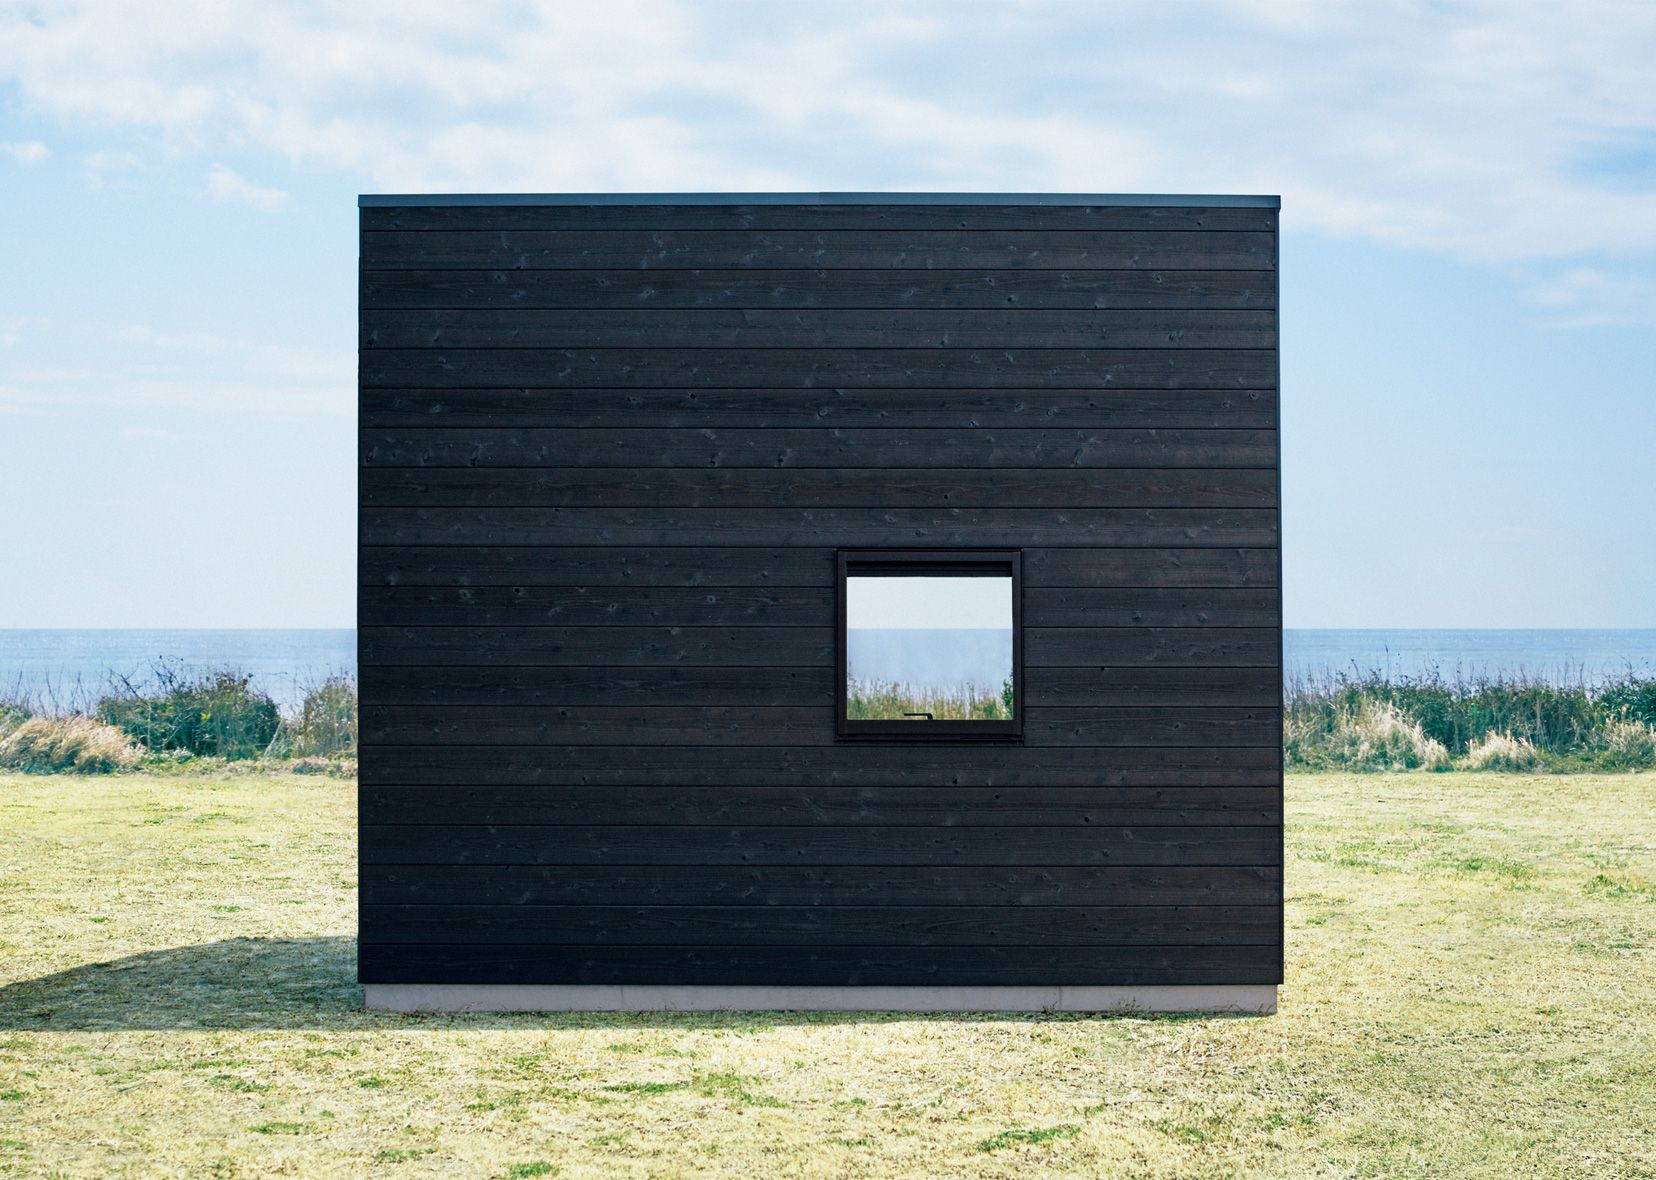 Muji Mobili ~ Muji hut tiny house is now on sale in japan for $26k muji hut